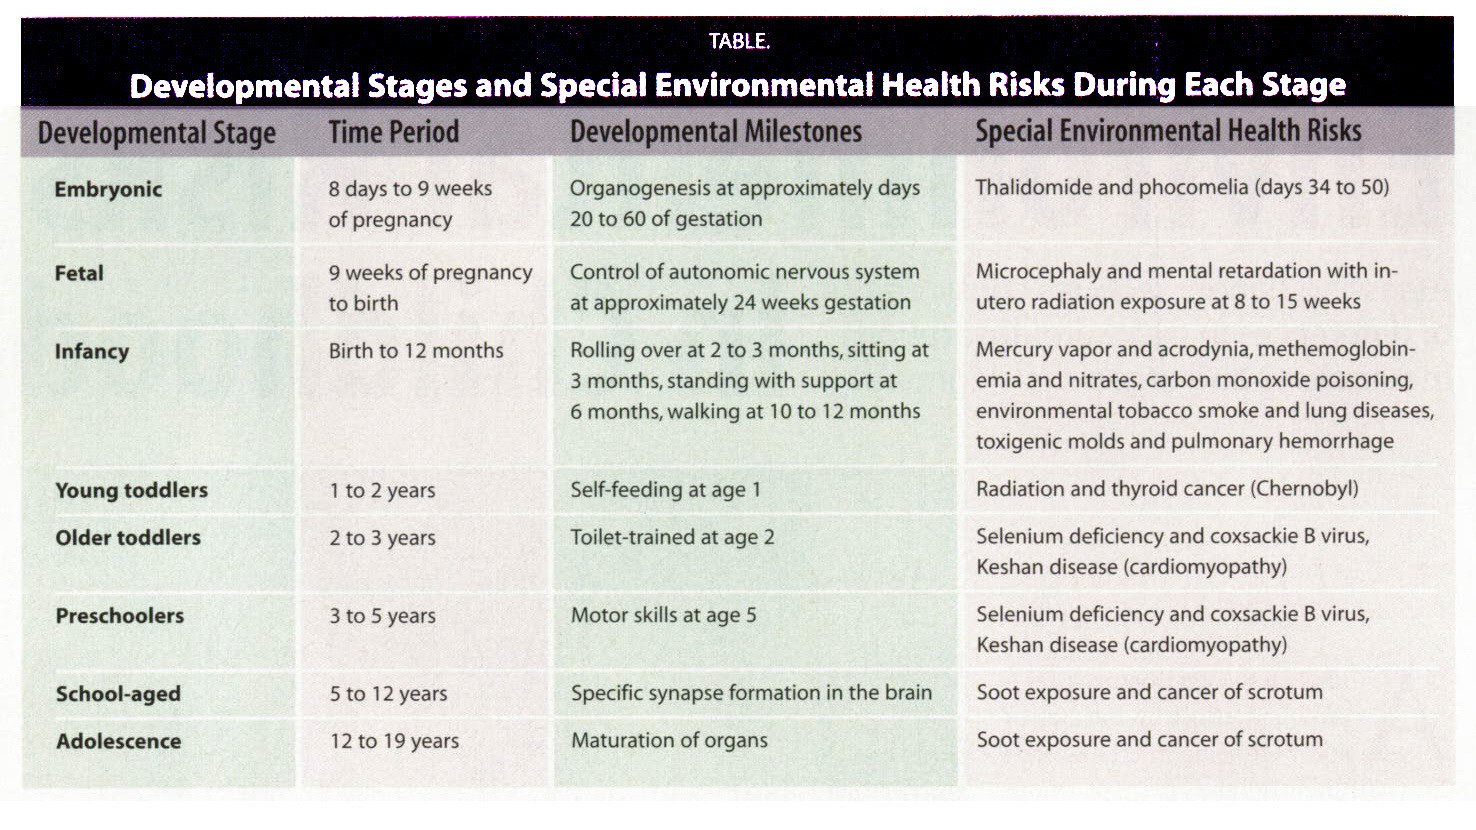 TABLE.Developmental Staqes and Special Environmental Health Risks During Each Stage